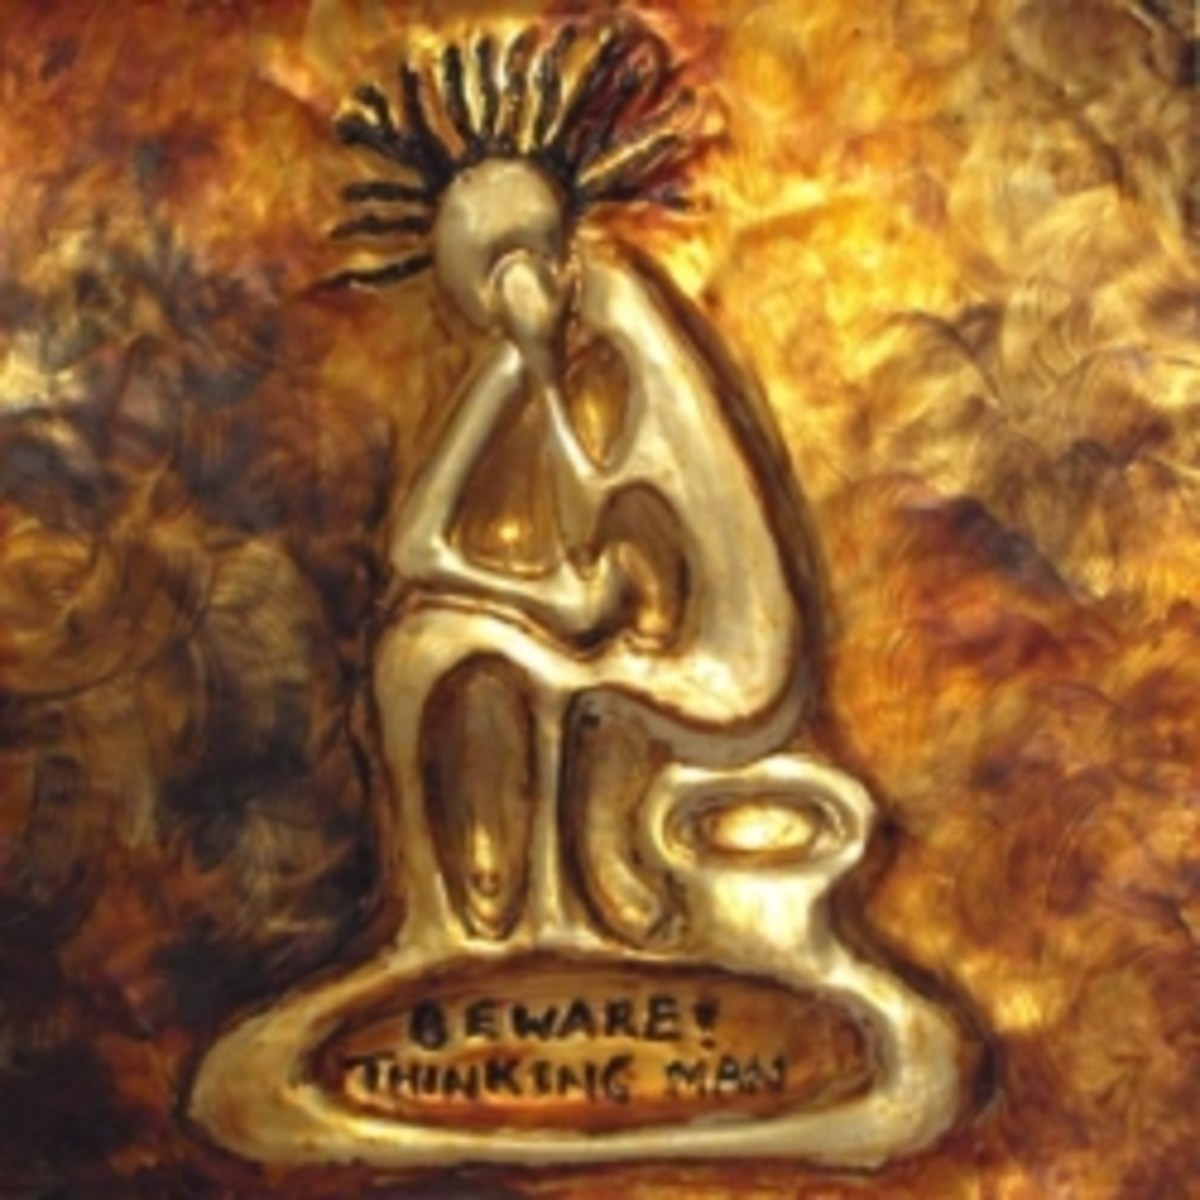 Beware Thinking Man: African Metal Art Card by Injete